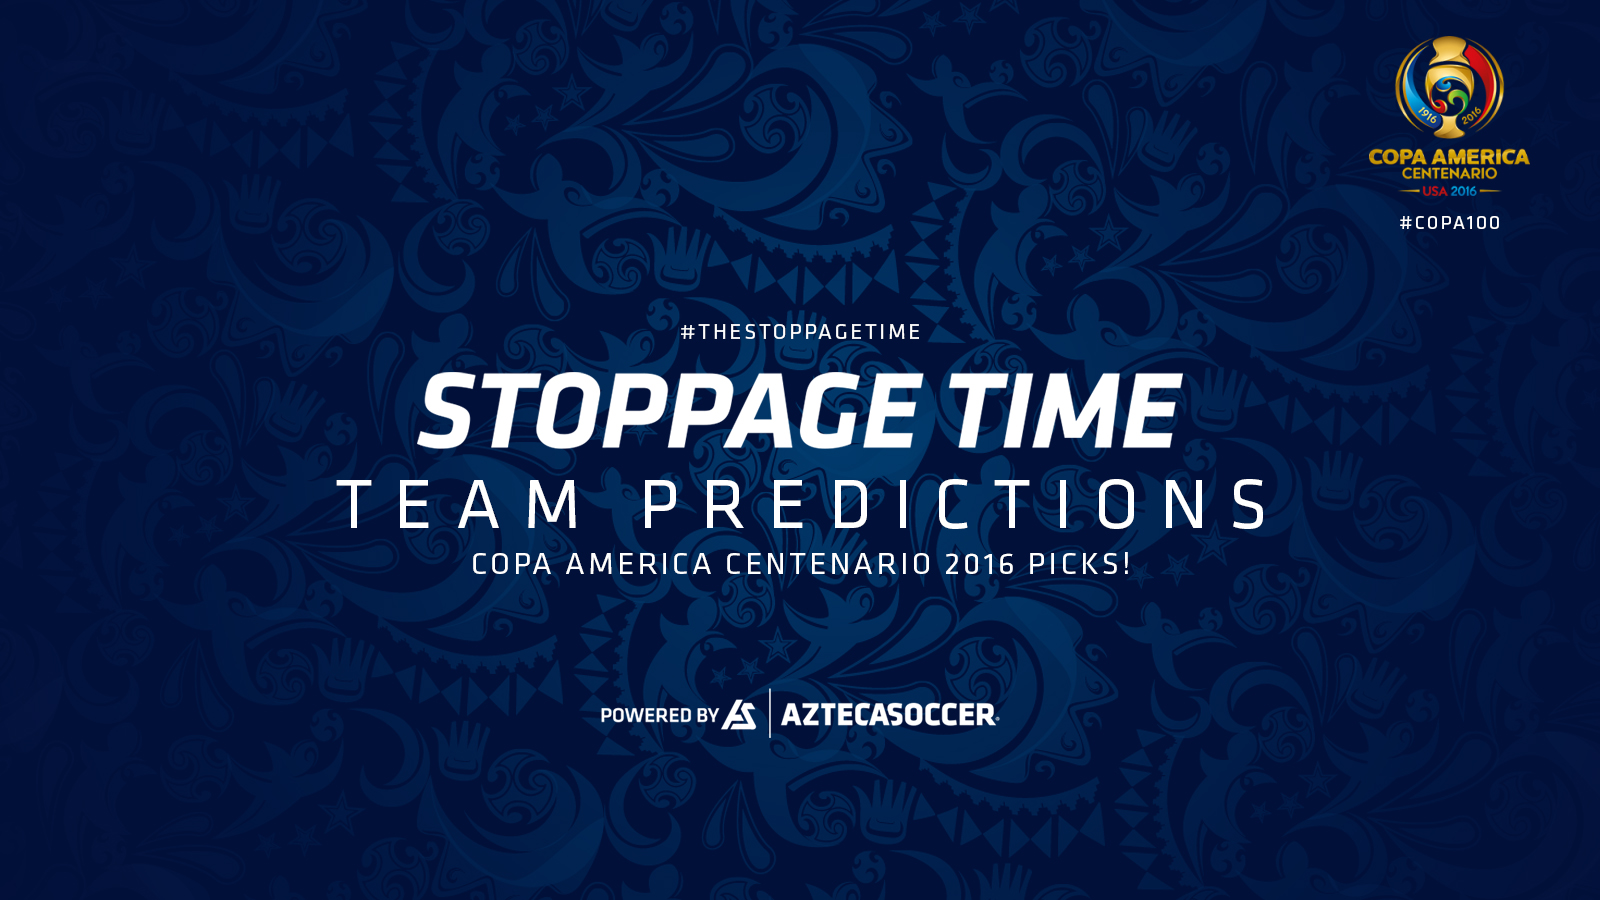 copa-america-the-stoppage-time-team-predictions-3